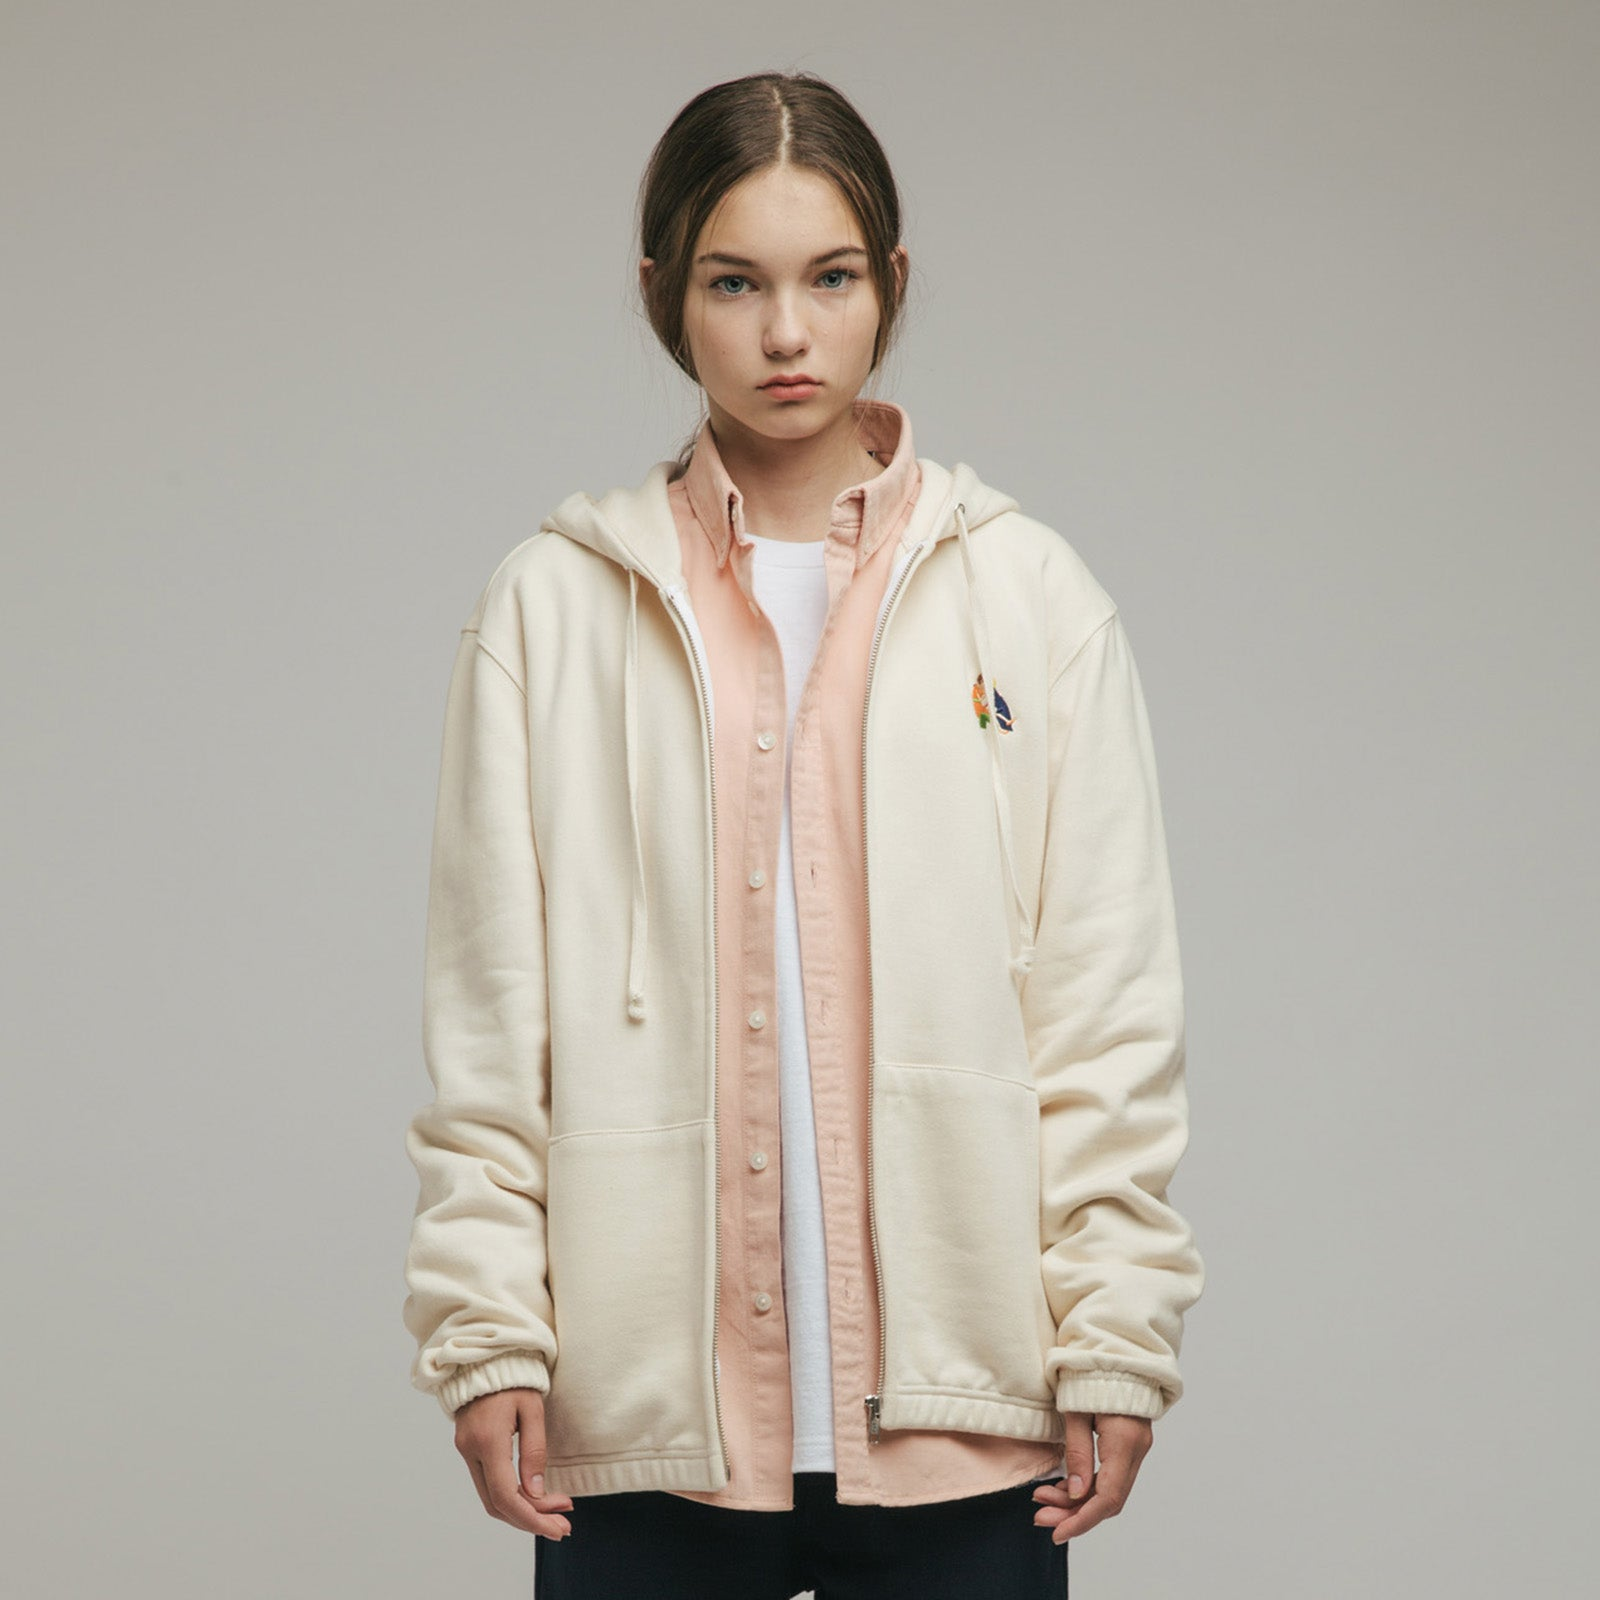 KISS EMBROIDERY HOODED ZIP JACKET (IVORY)